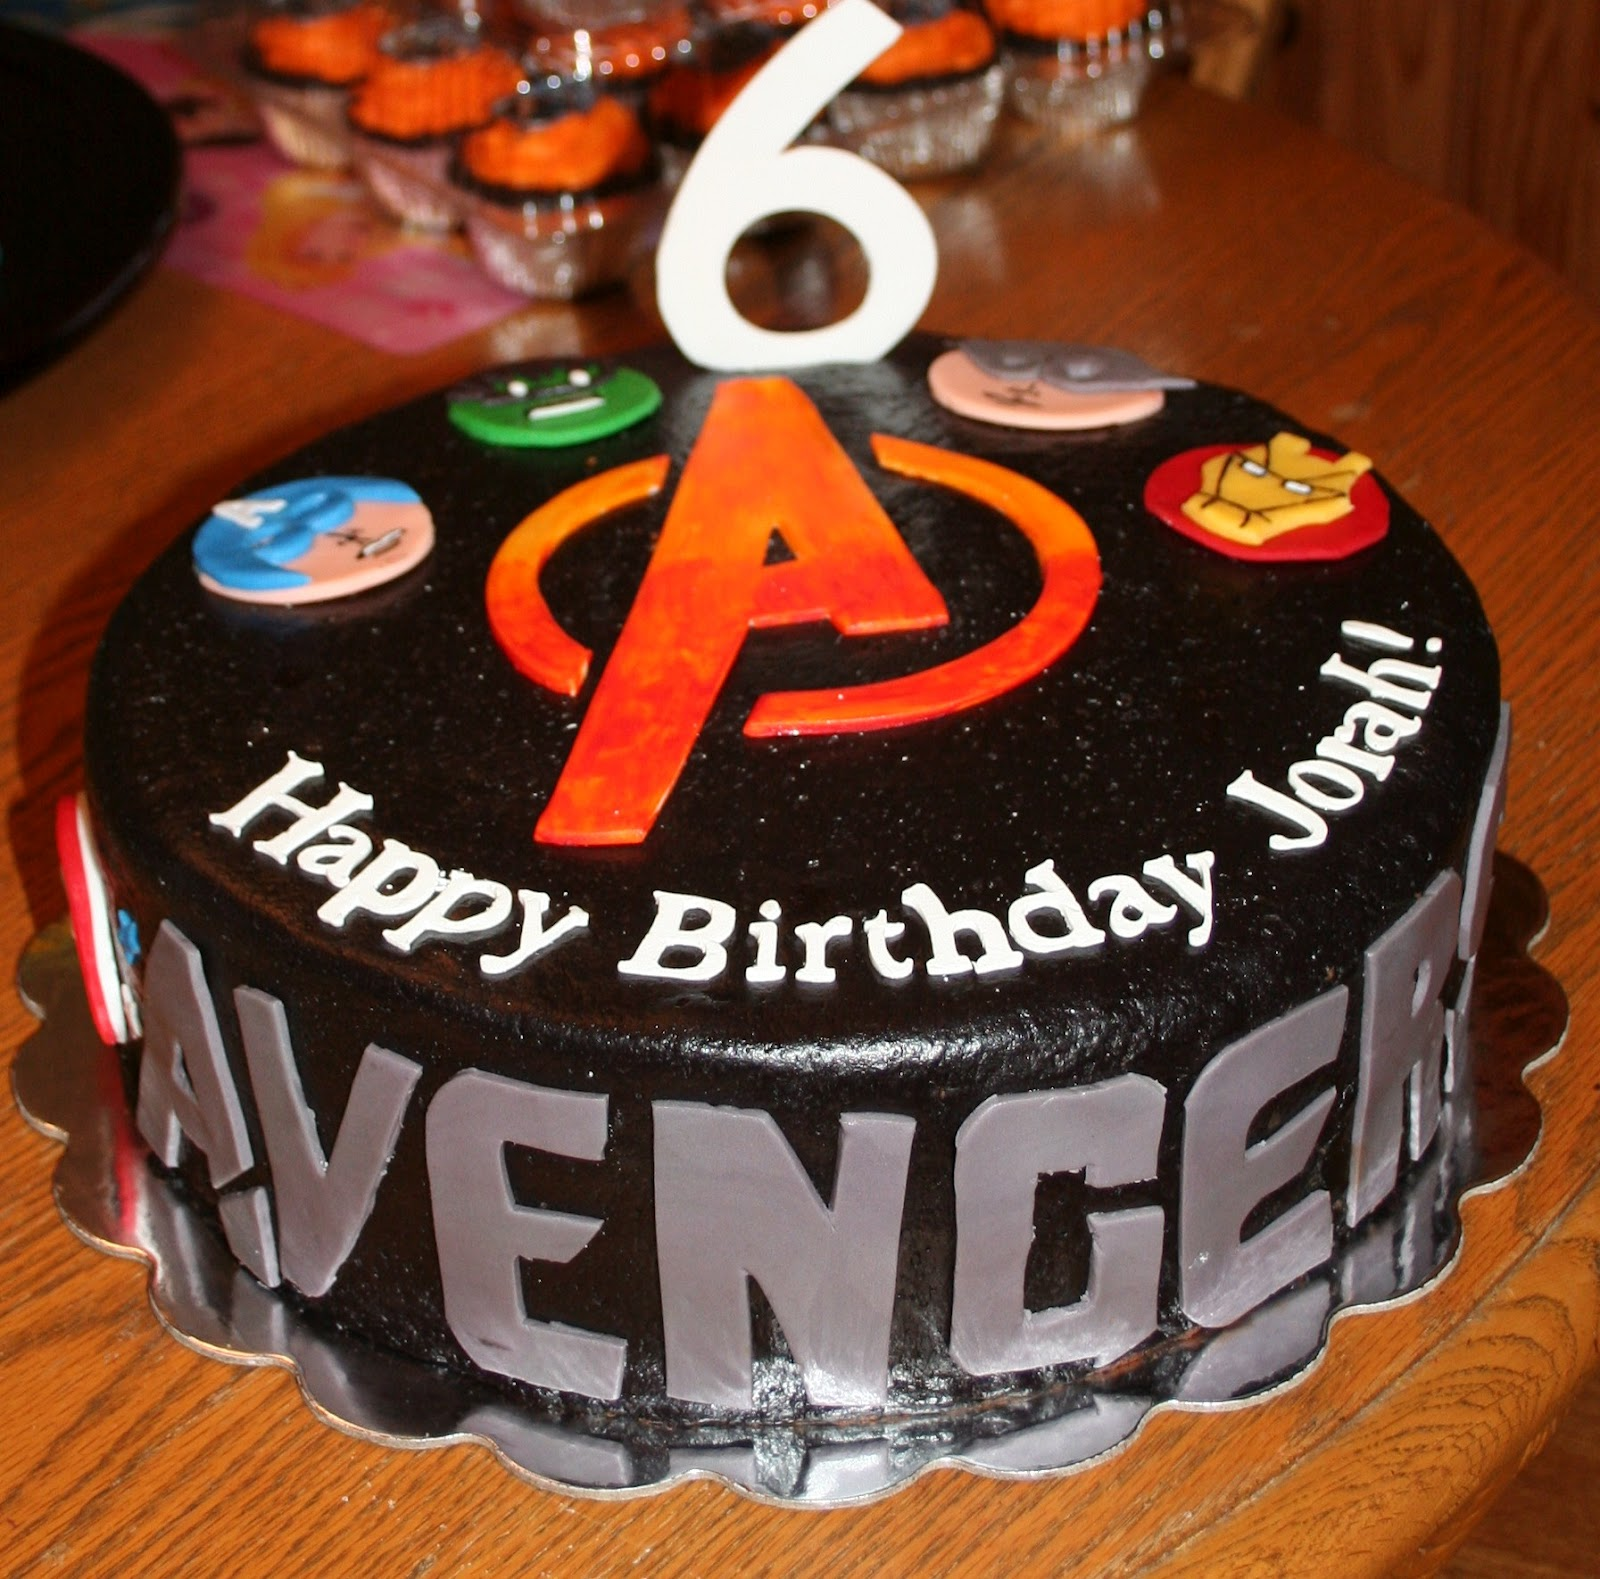 Pink Frosting Bakery: Avengers cake and cupcakes